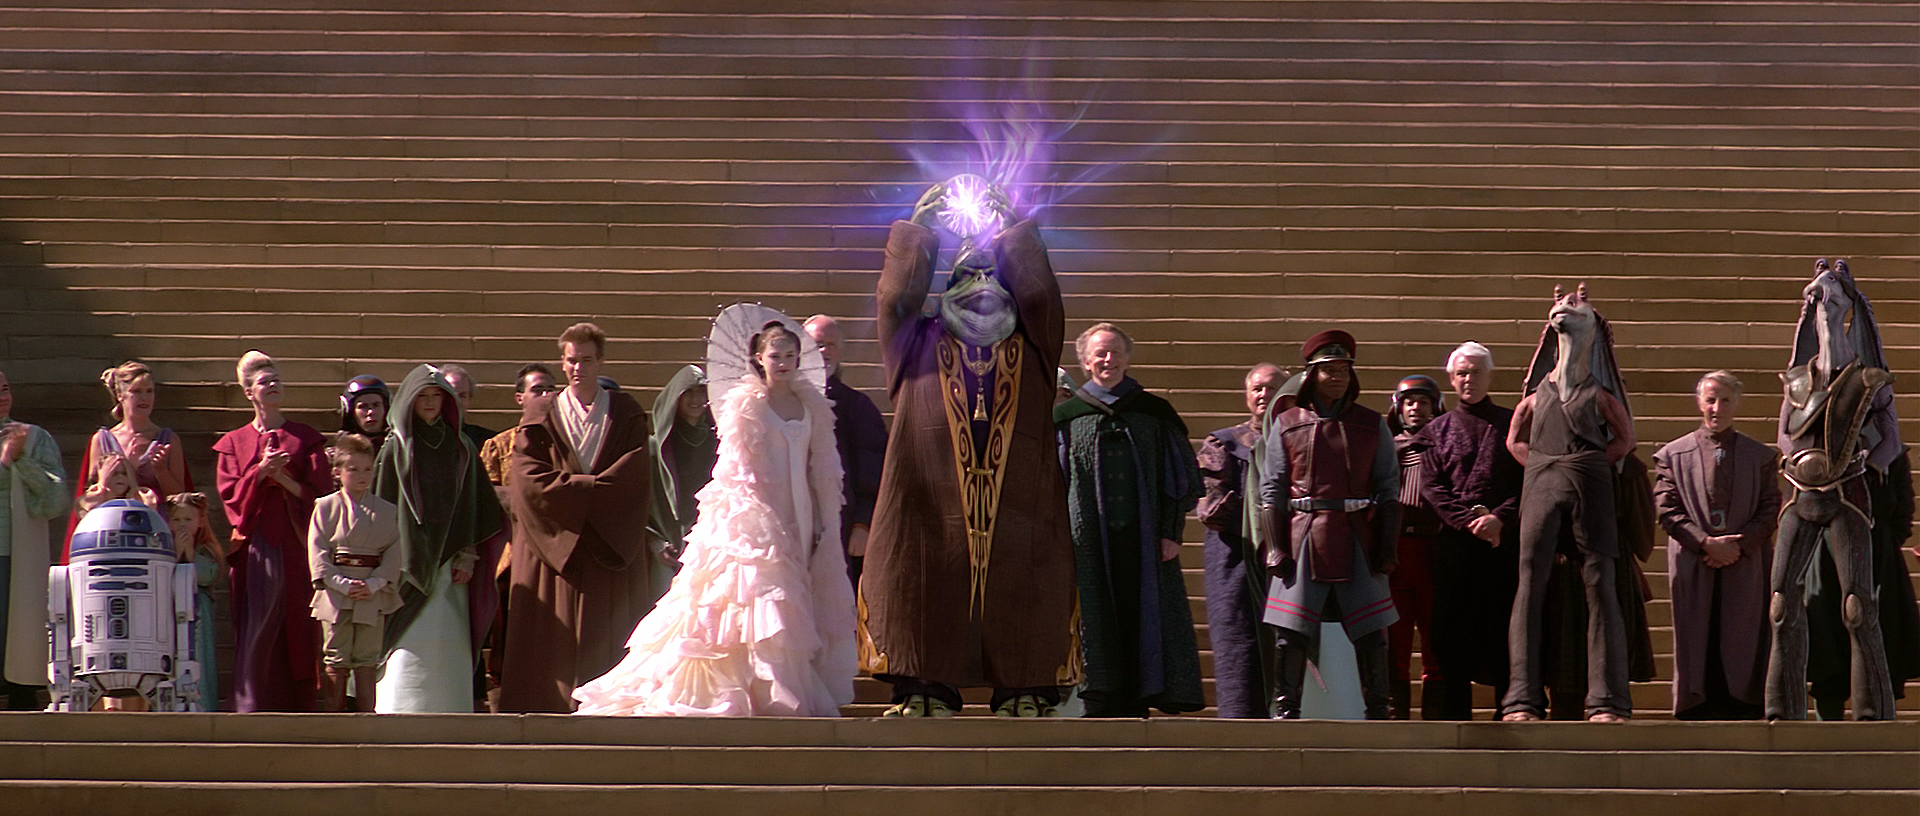 Star Wars Episode I The Phantom Menace Wookieepedia Fandom